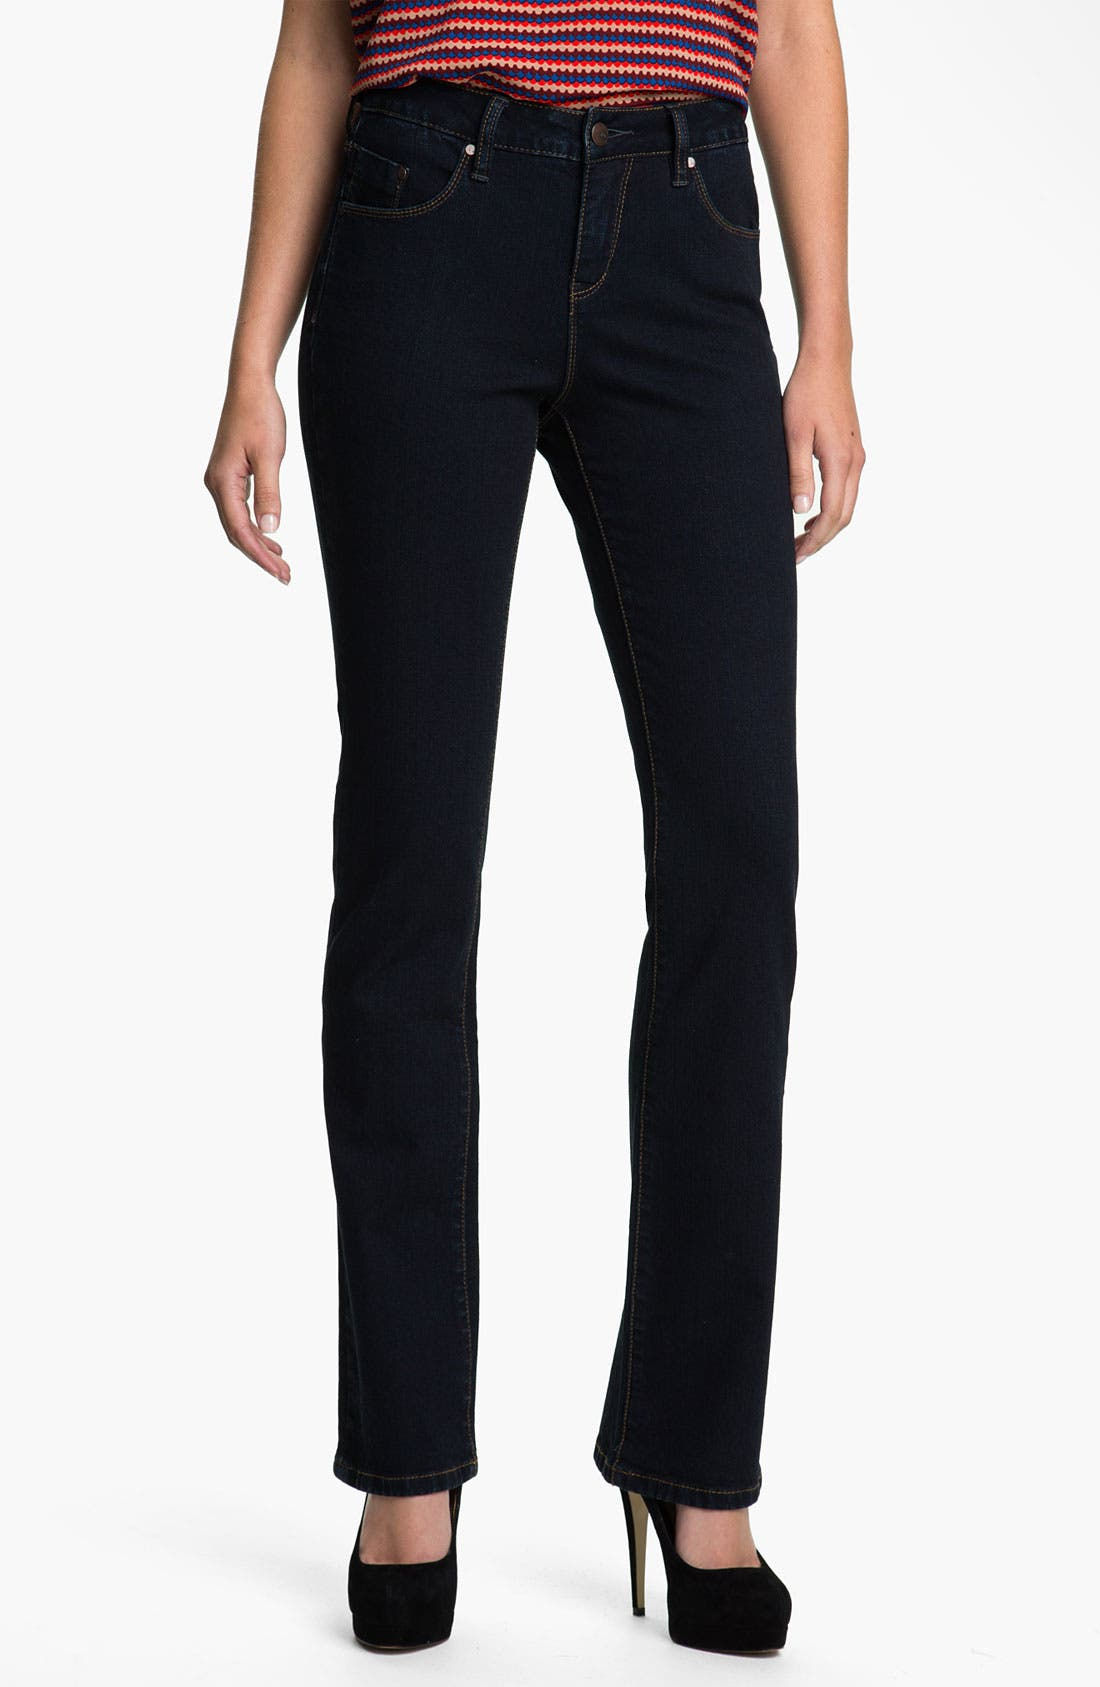 Main Image - Jag Jeans 'Foster' Narrow Bootcut Jeans